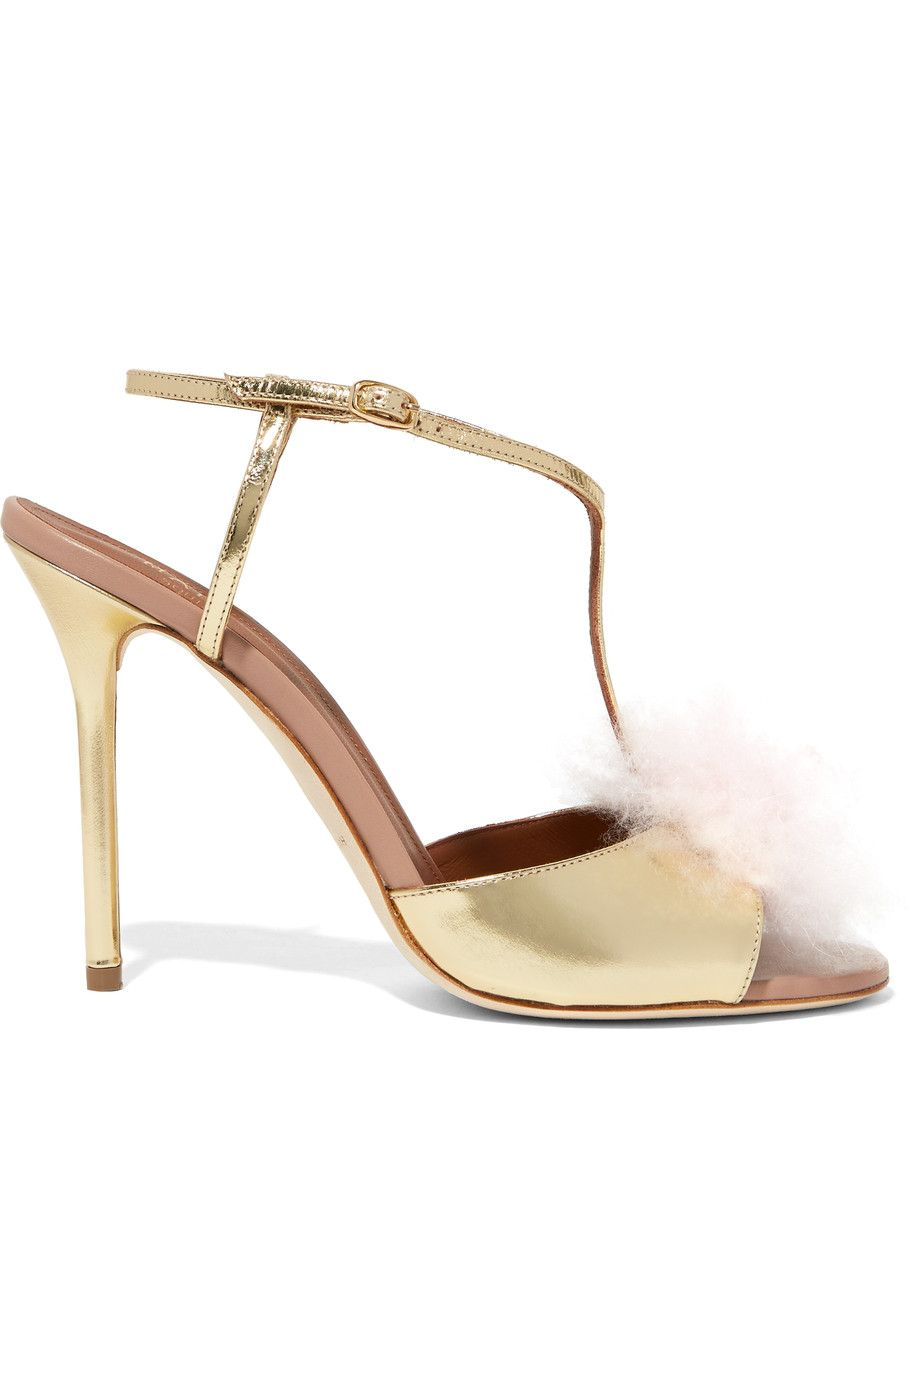 Find this Pin and more on Malone Souliers. Malone Souliers - Betsy cashmere  and metallic leather sandals